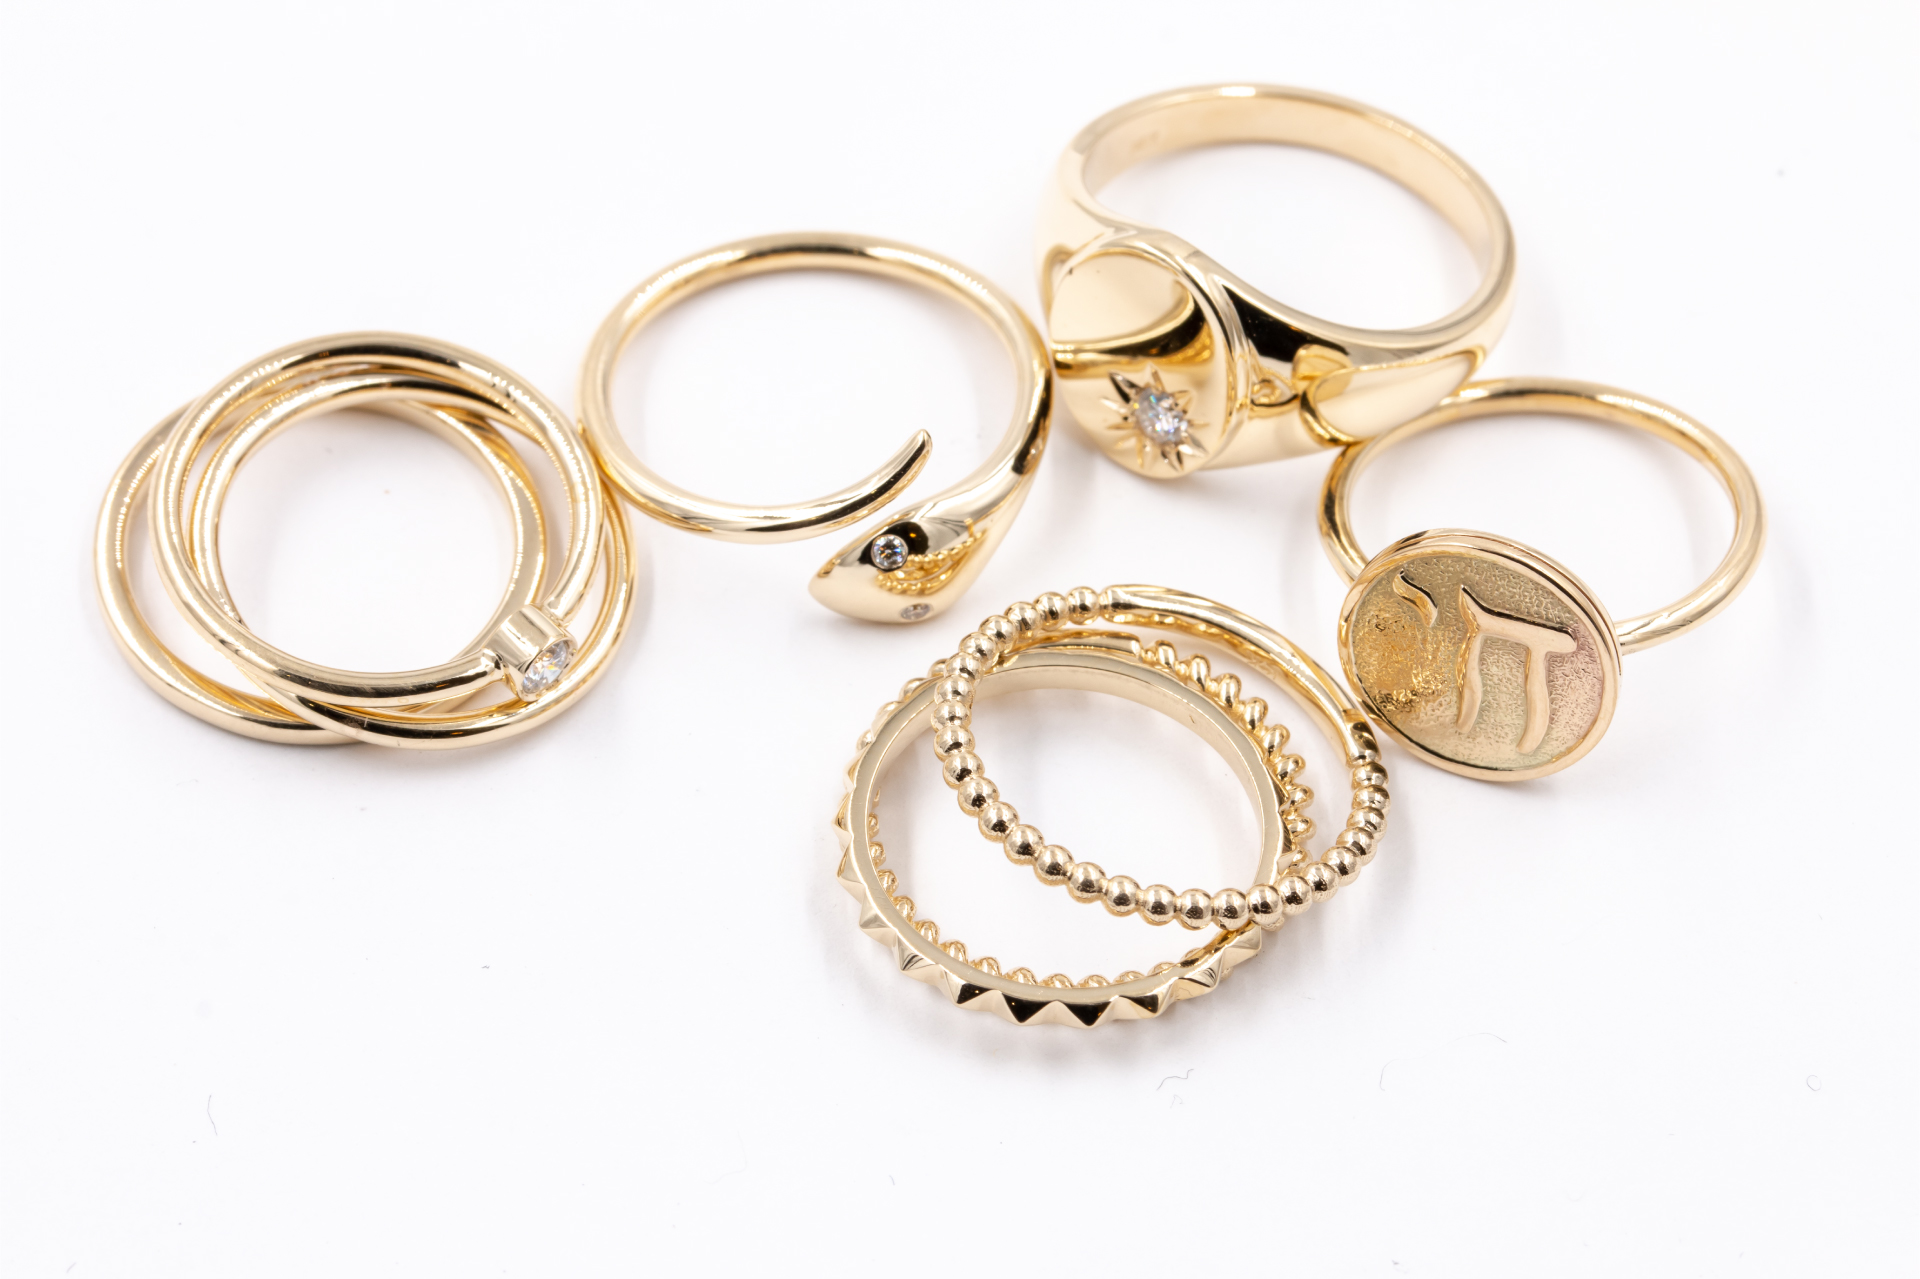 stacking-rings-gold-diamonds-custom-fashion-jewelry-for-sale